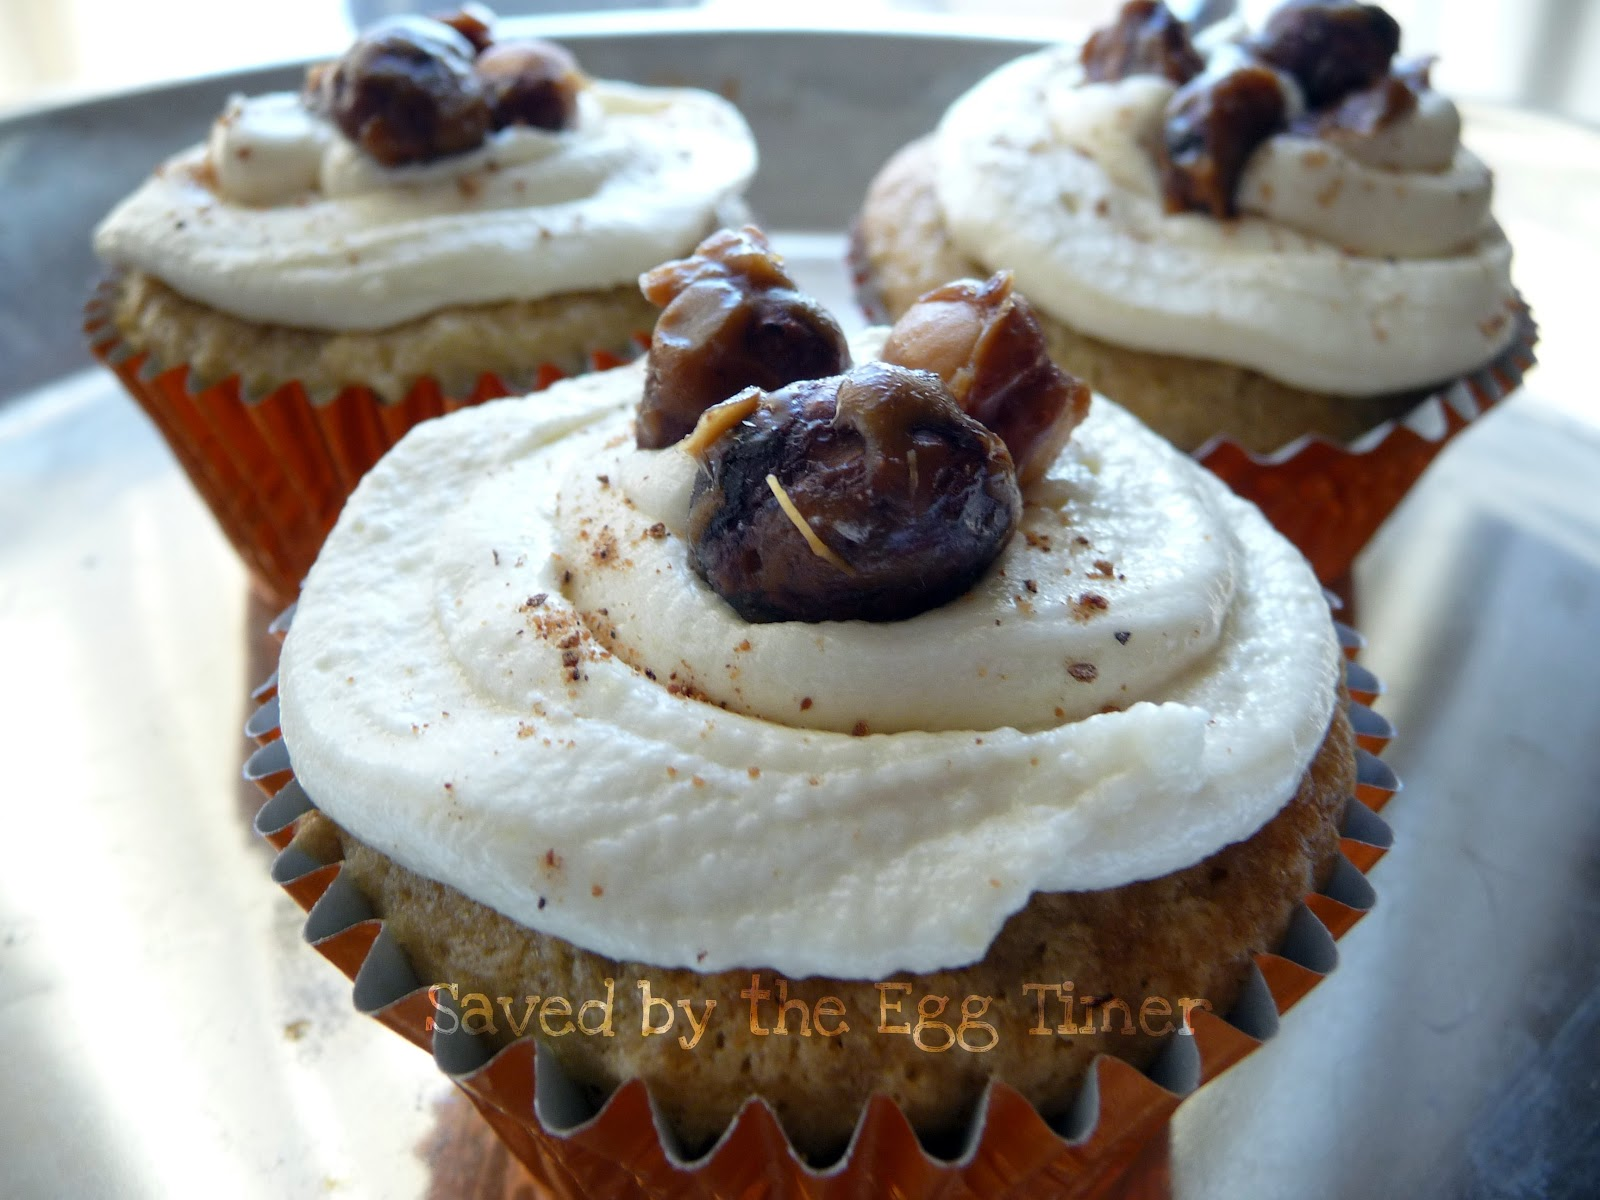 Banana Cupcakes with Candied Hazelnuts